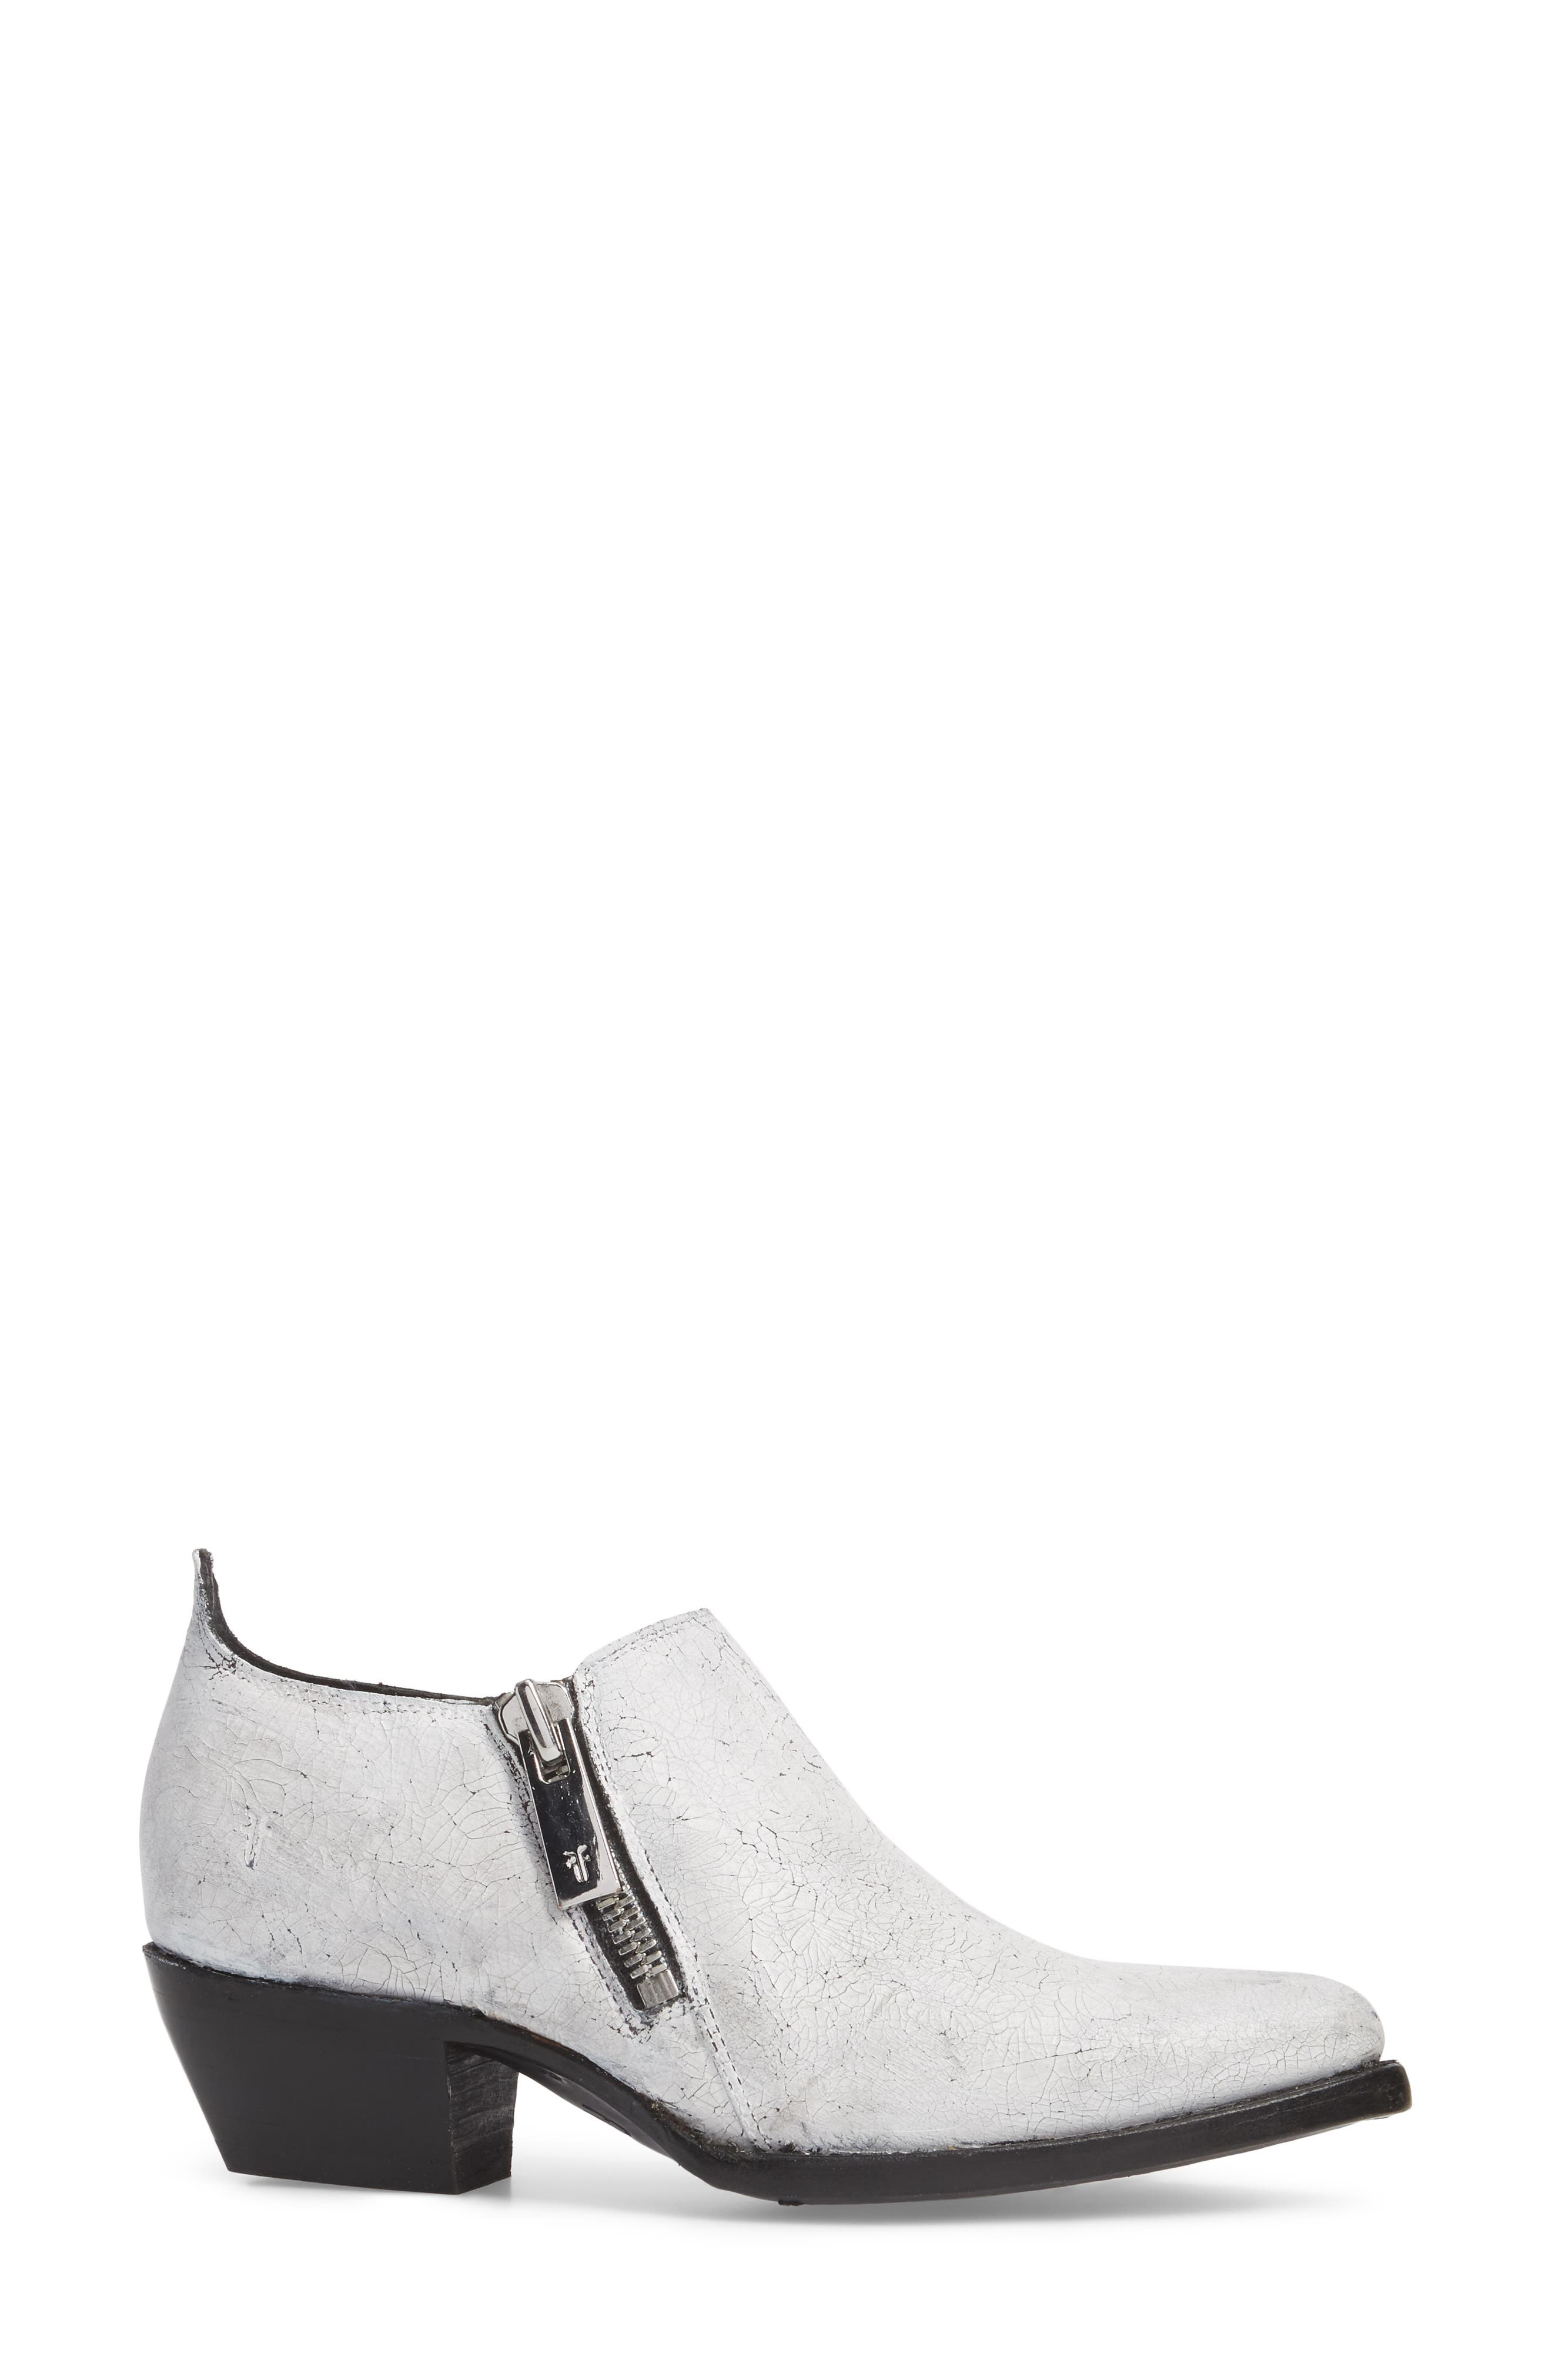 Sacha Double Zip Bootie,                             Alternate thumbnail 3, color,                             White